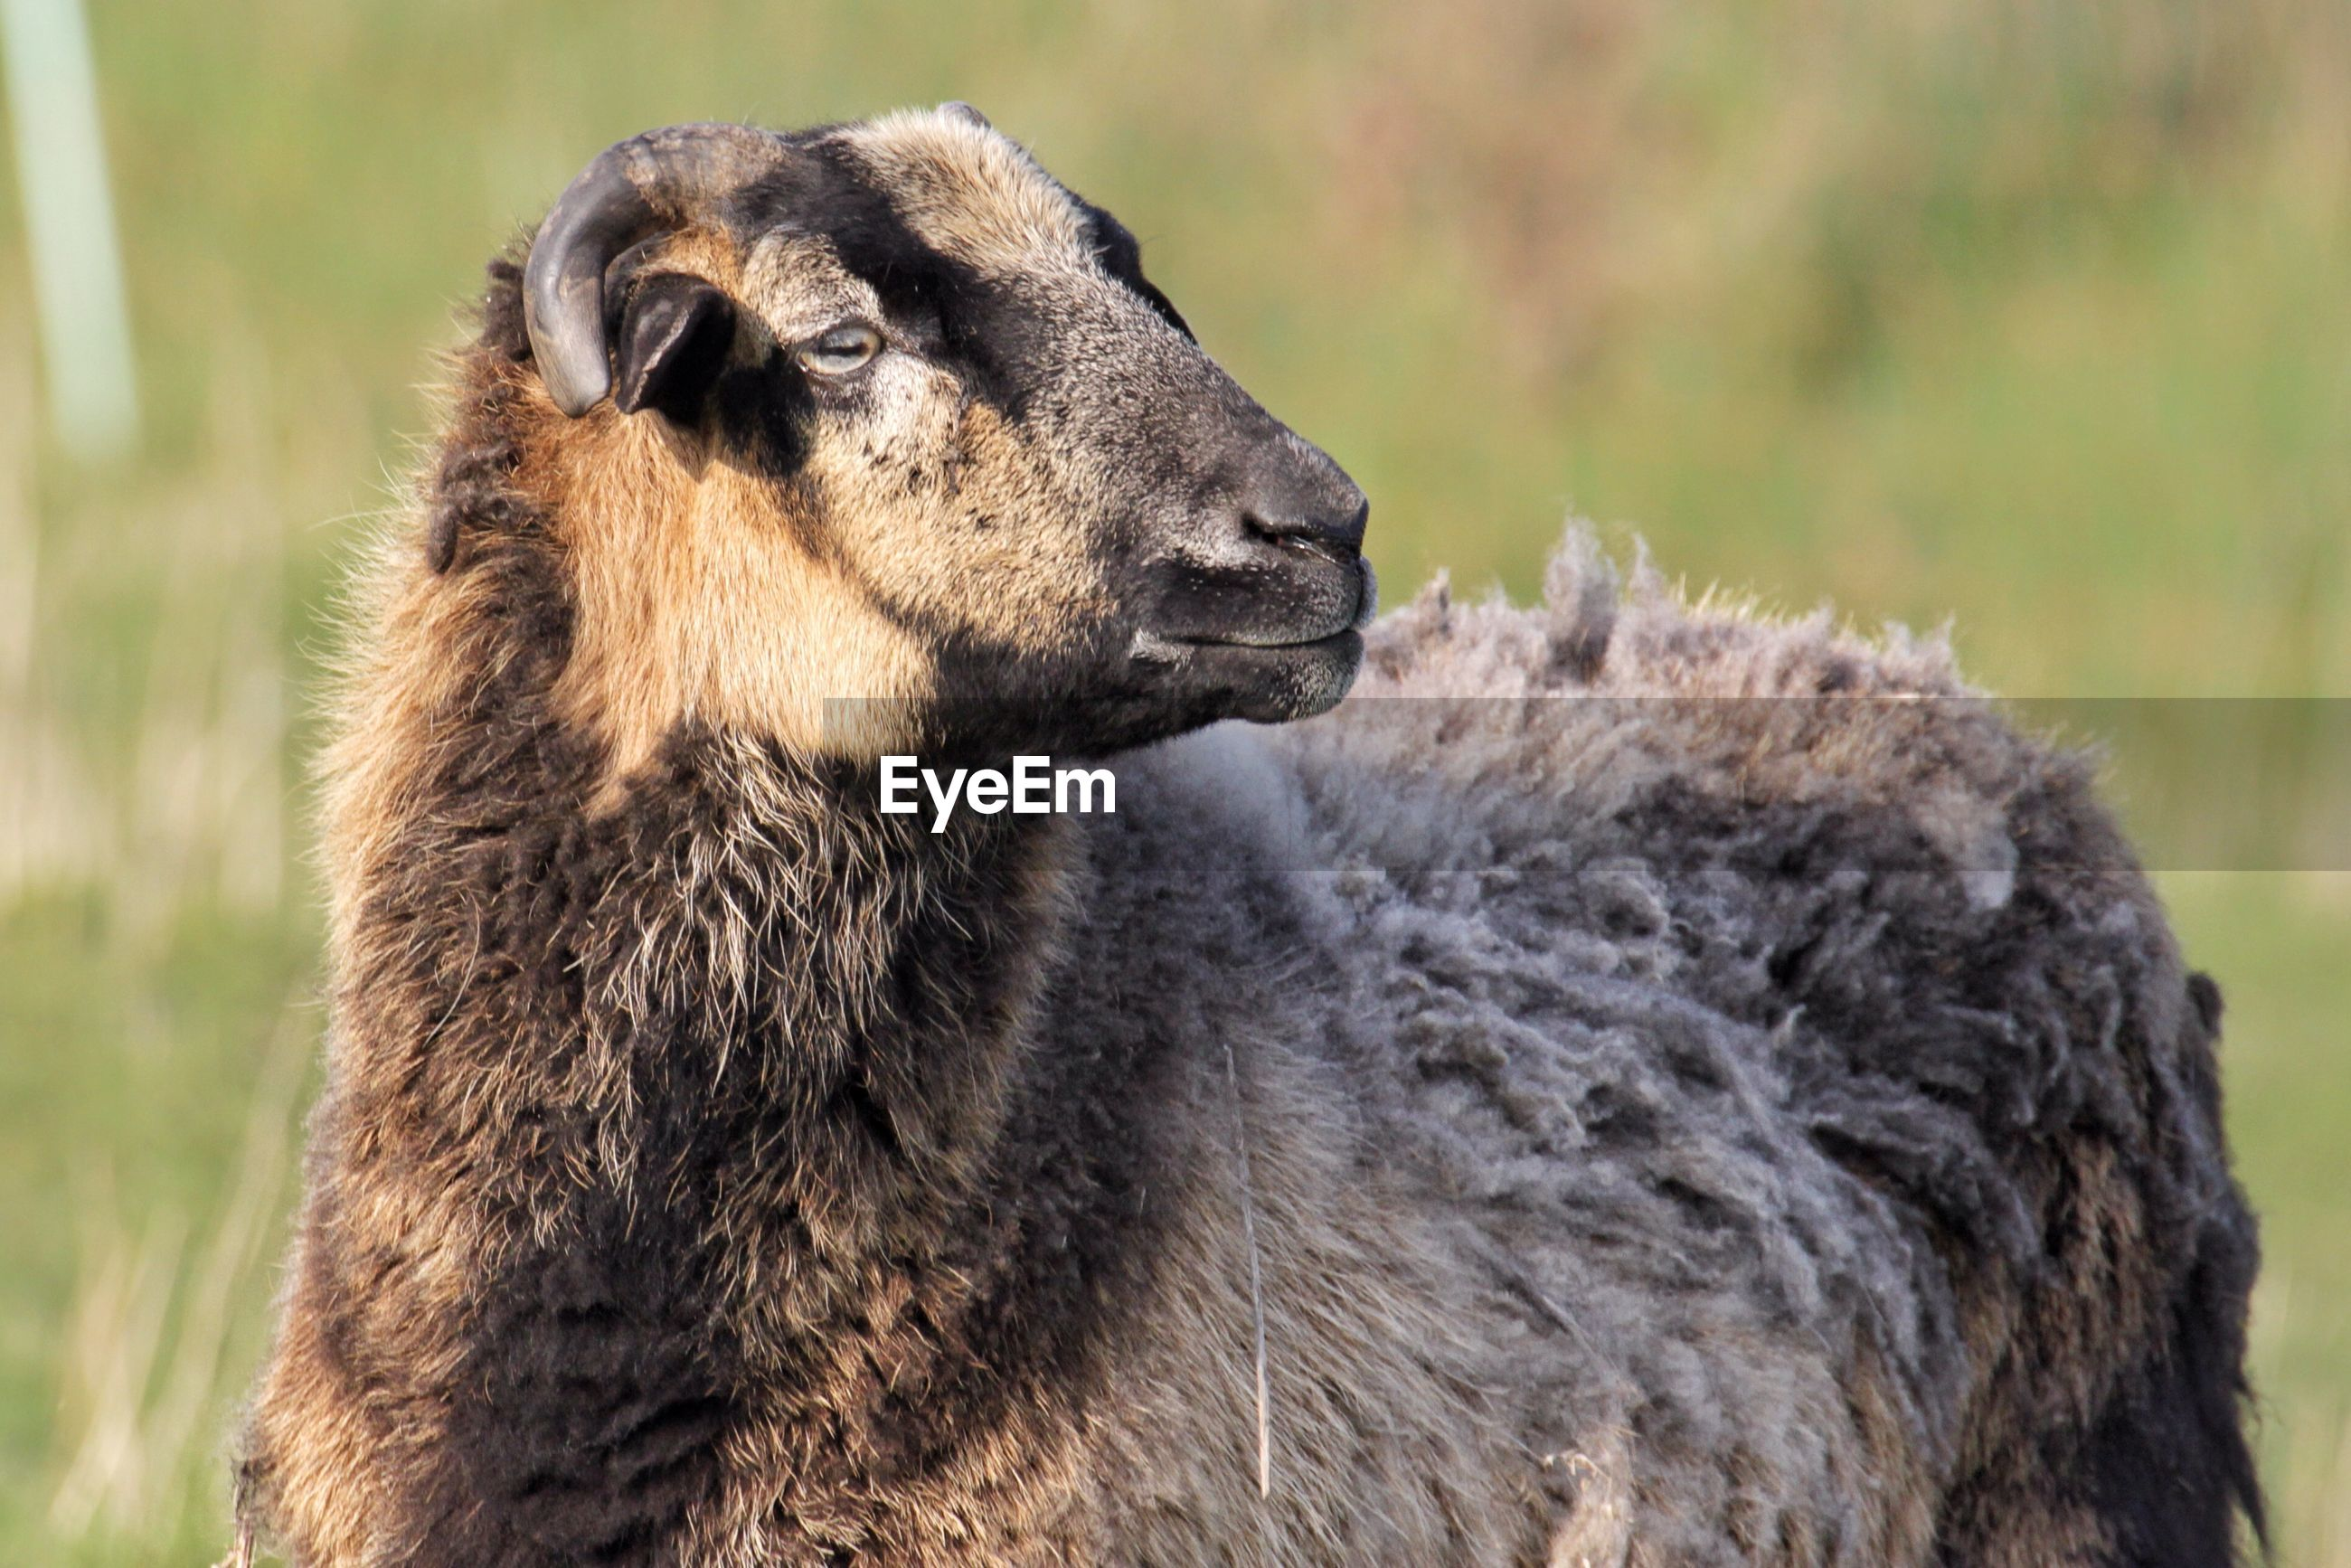 Close-up of horned sheep looking away